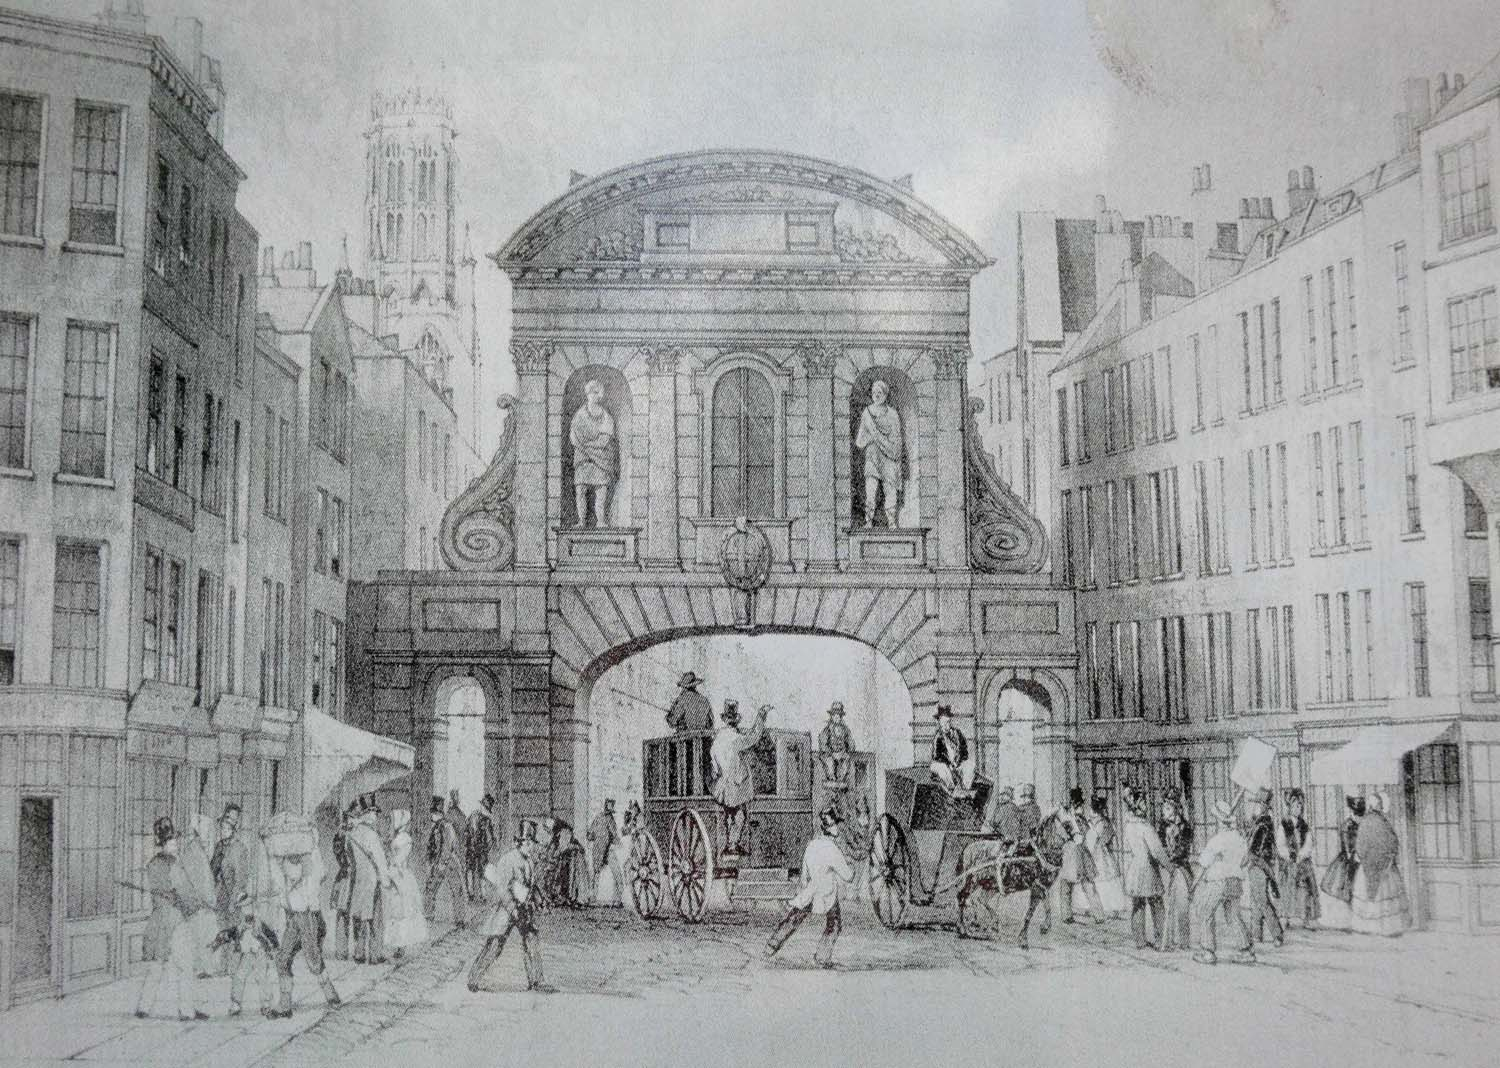 view of Temple Bar in 1845